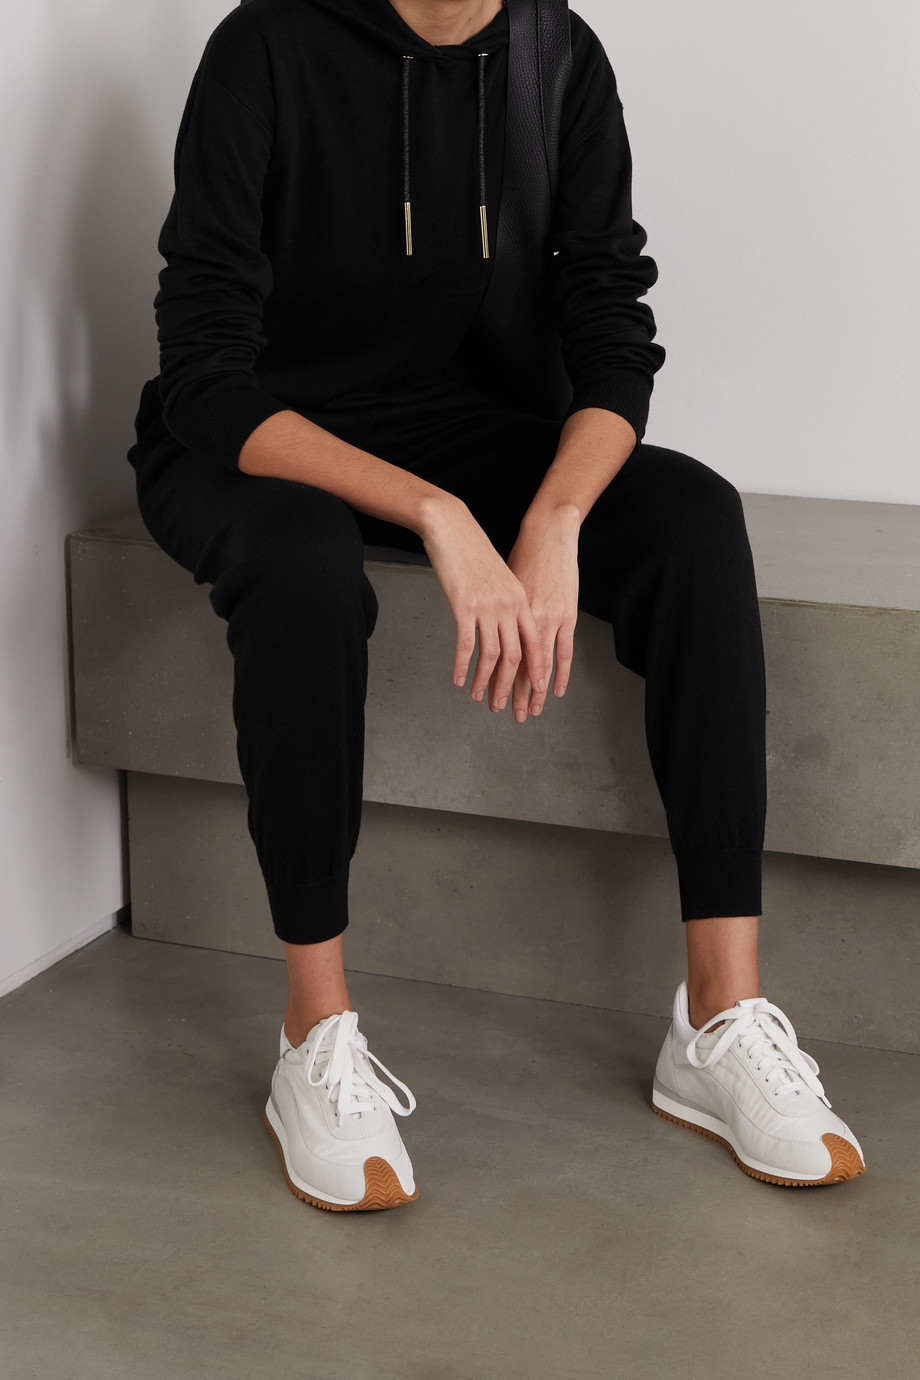 Olivia von Halle Gia Berlin cashmere and silk-blend hoodie and track pants set